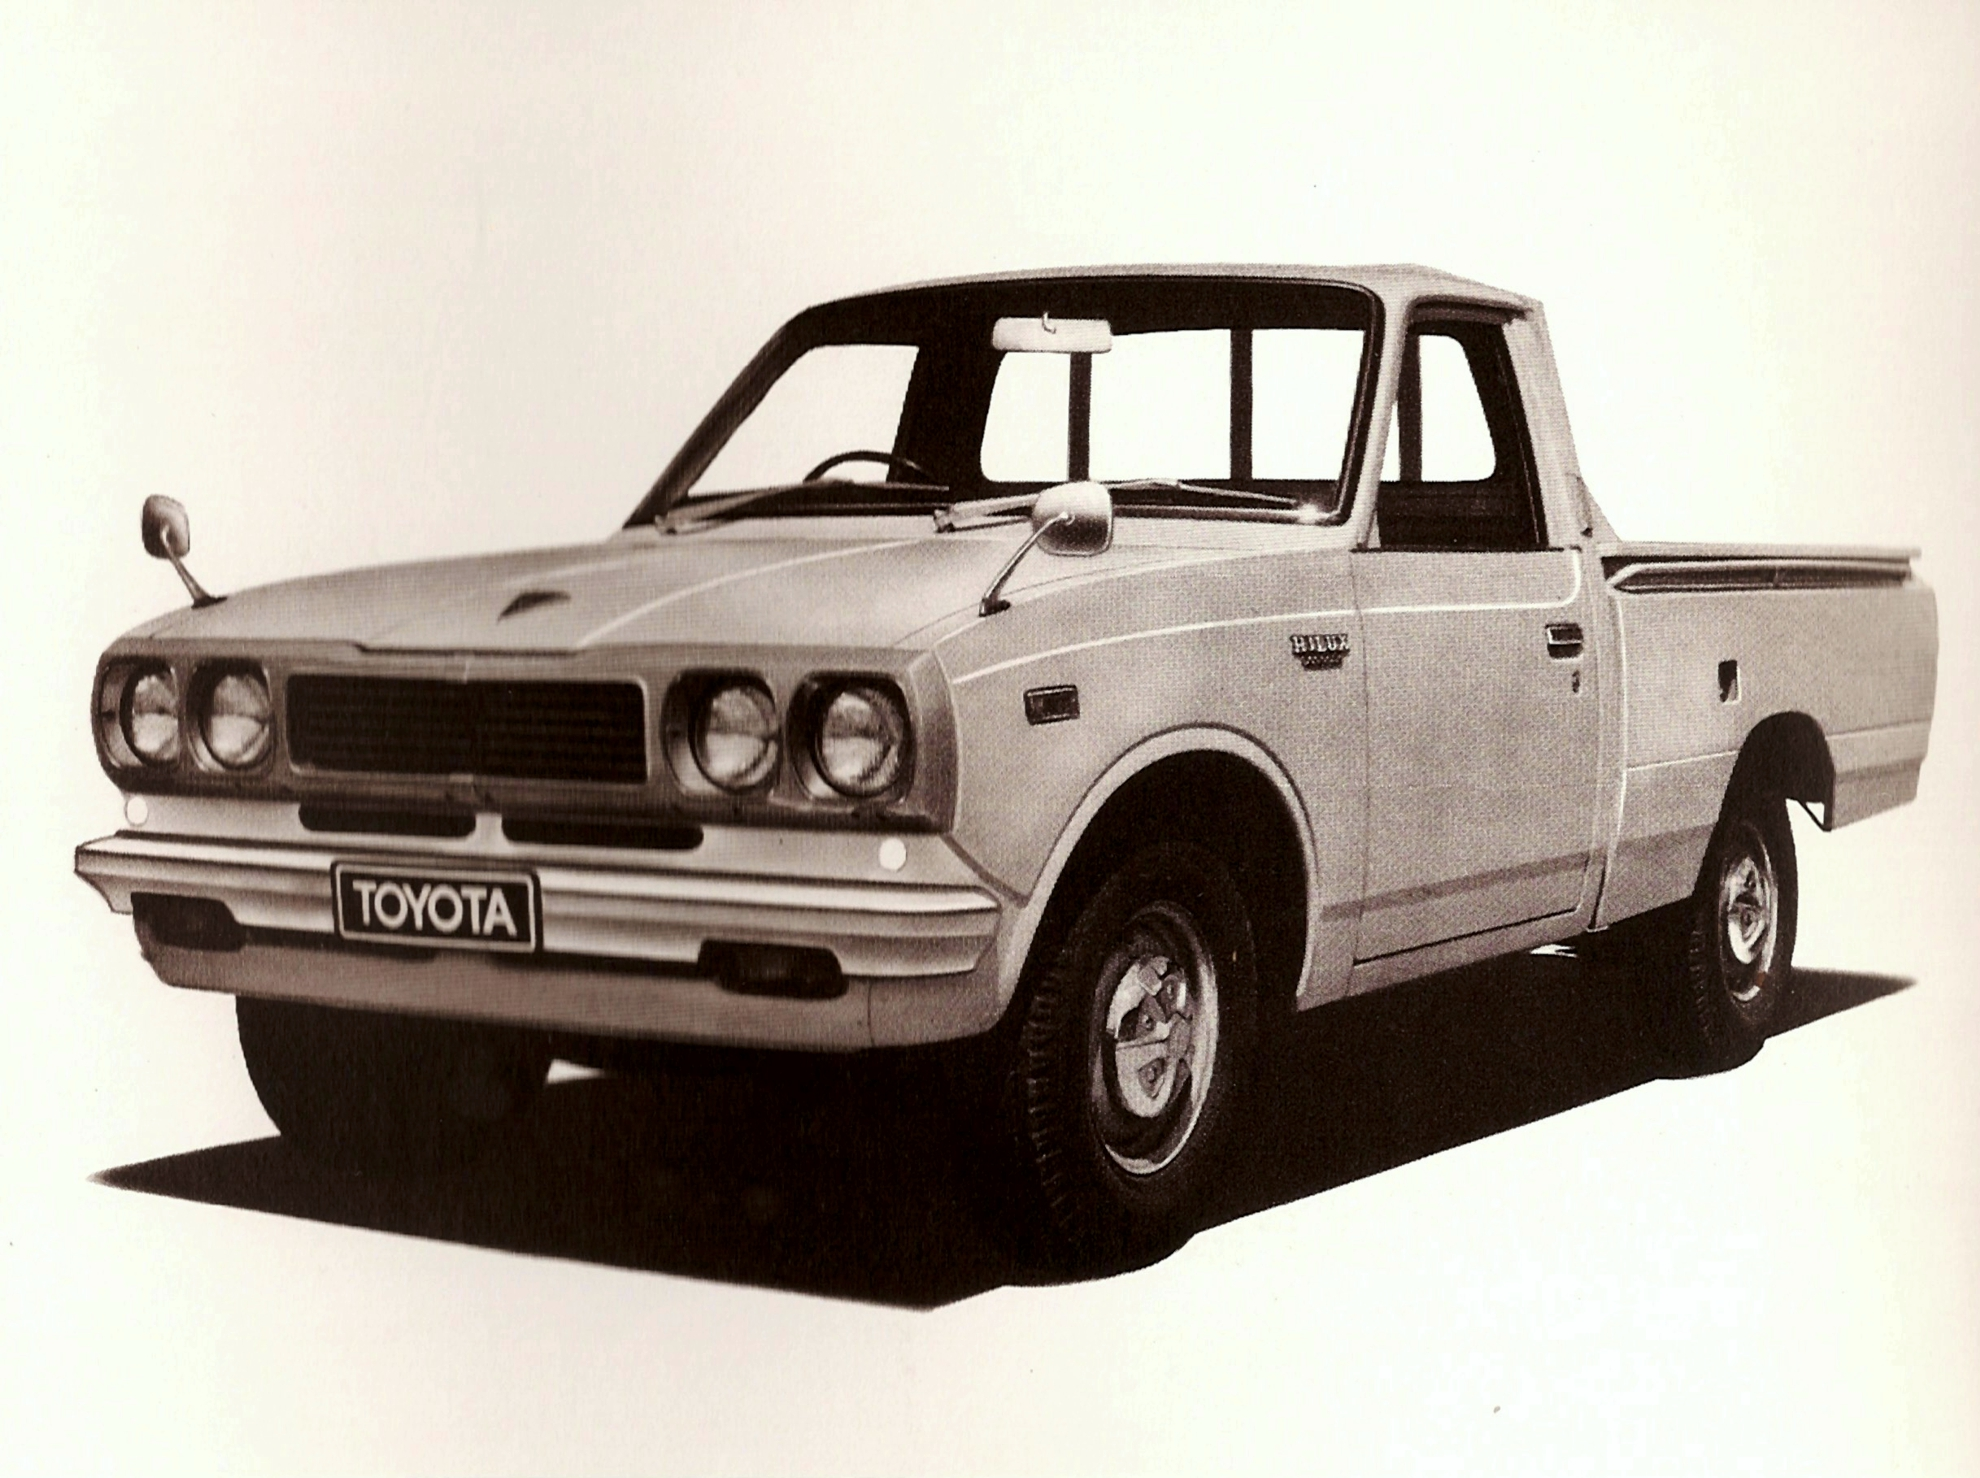 Toyota-Hilux-2nd-generation